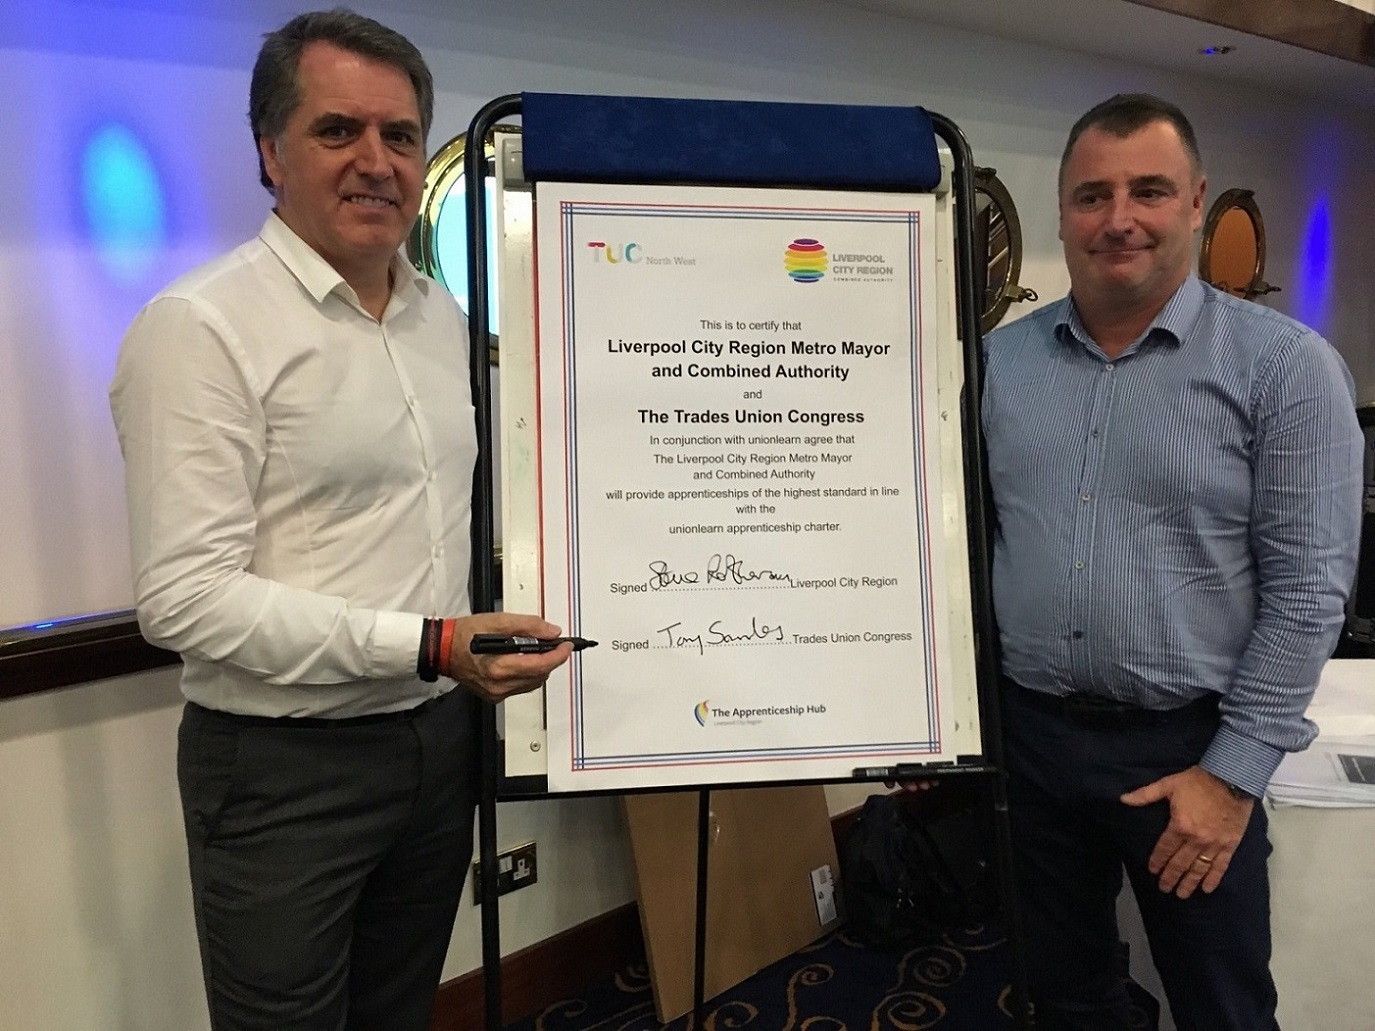 Sign up for skills - Steve Rotheram and Tony Saunders